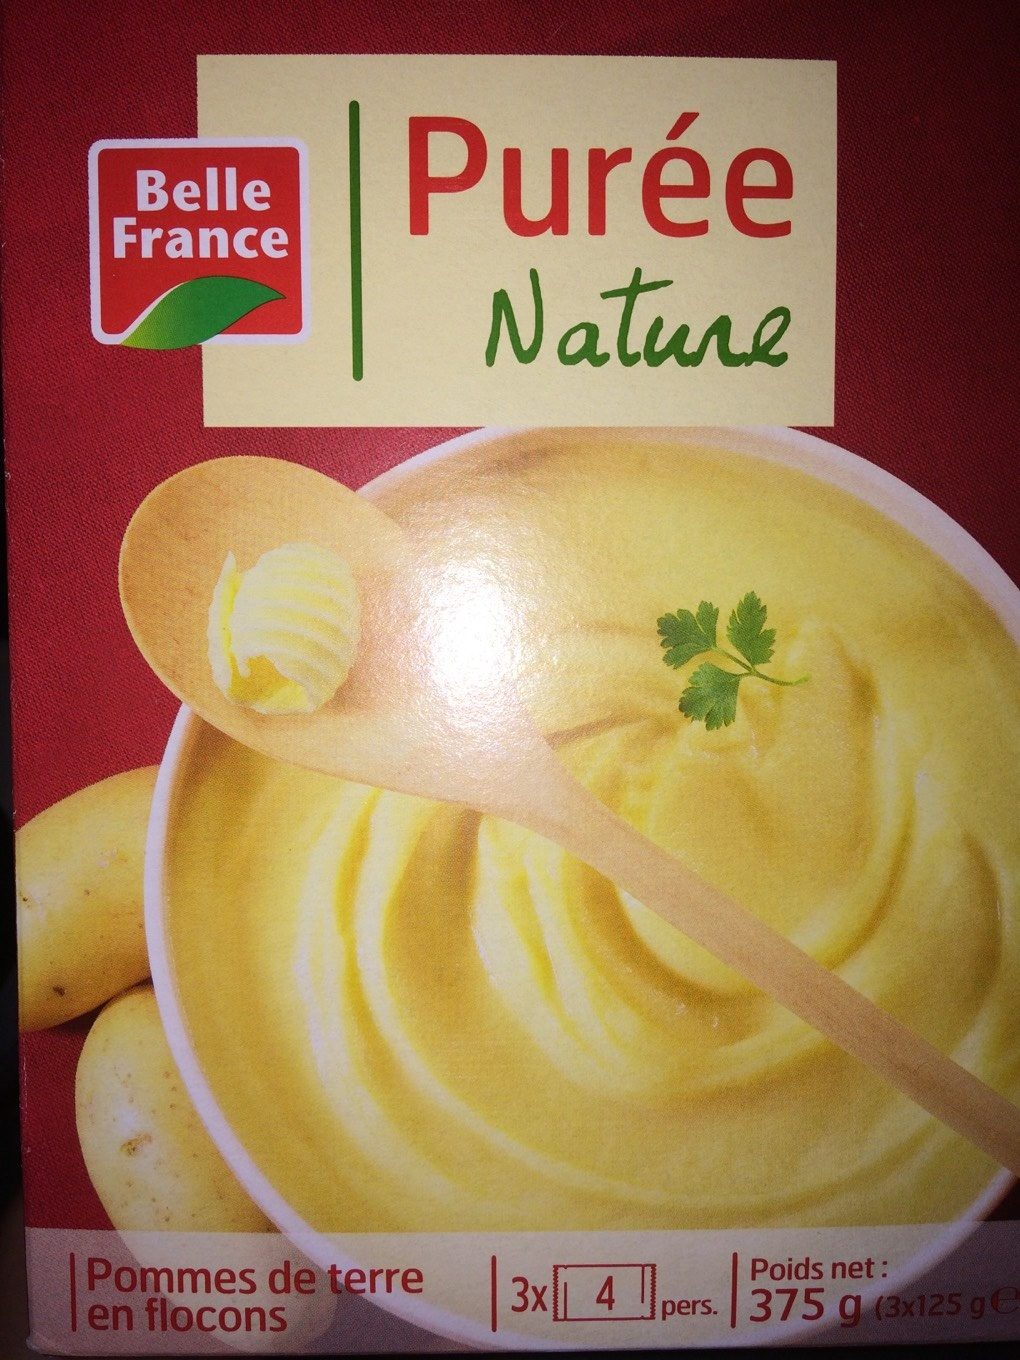 puree nature 3x 125g belle france. Black Bedroom Furniture Sets. Home Design Ideas